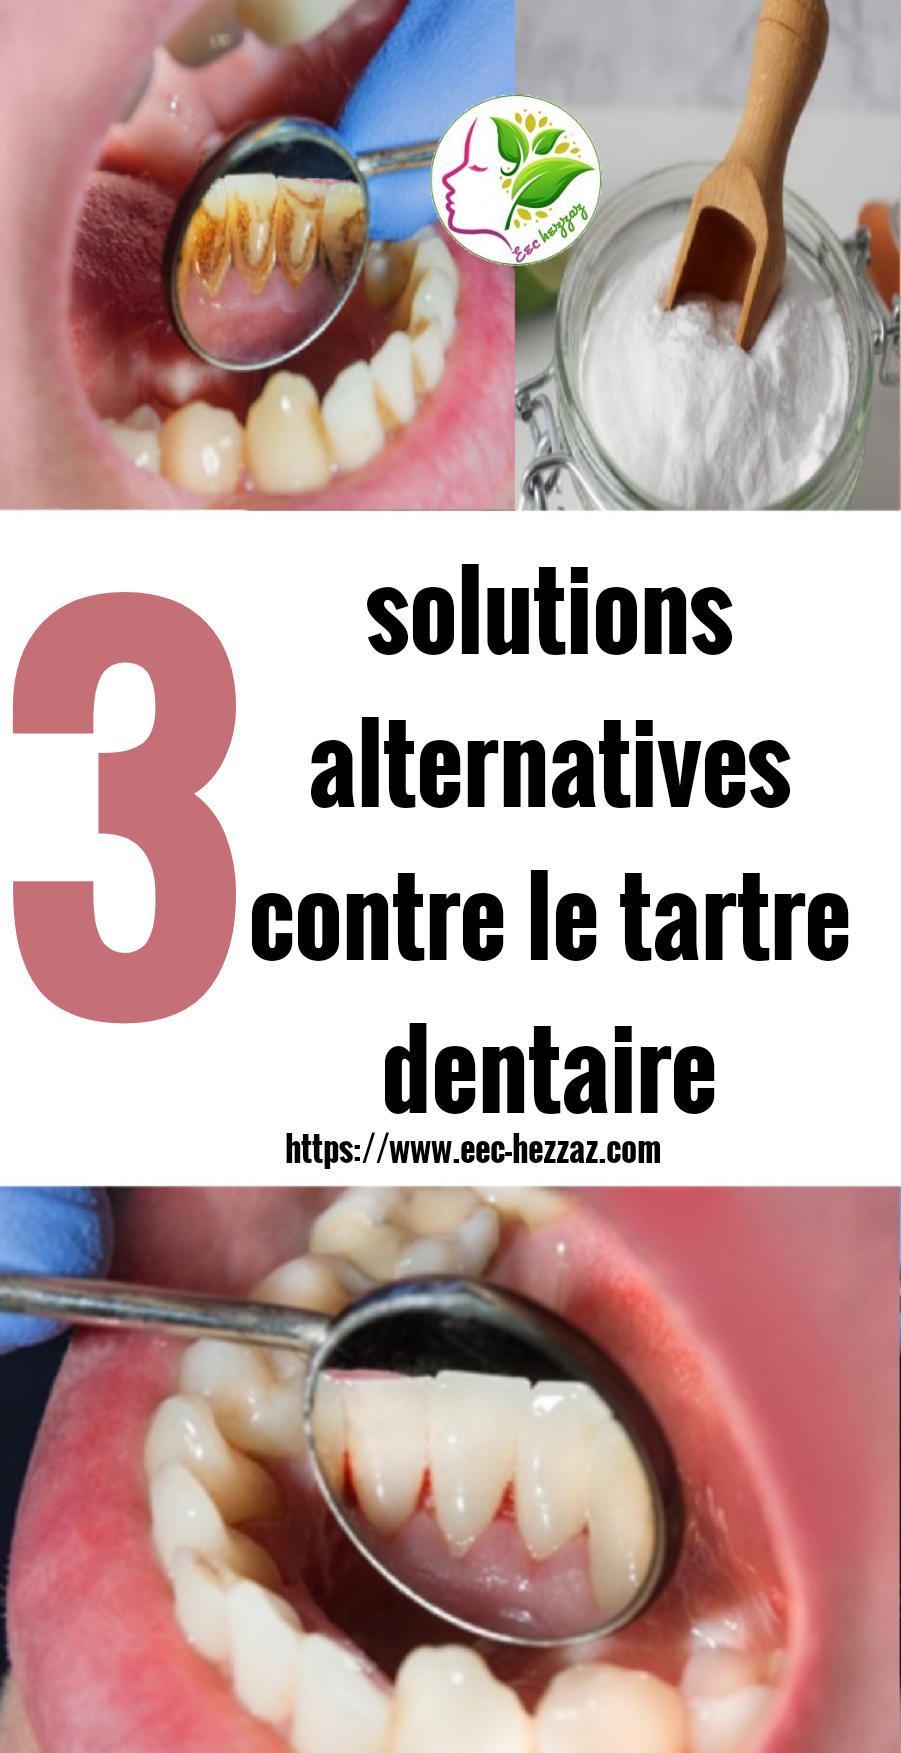 3 solutions alternatives contre le tartre dentaire